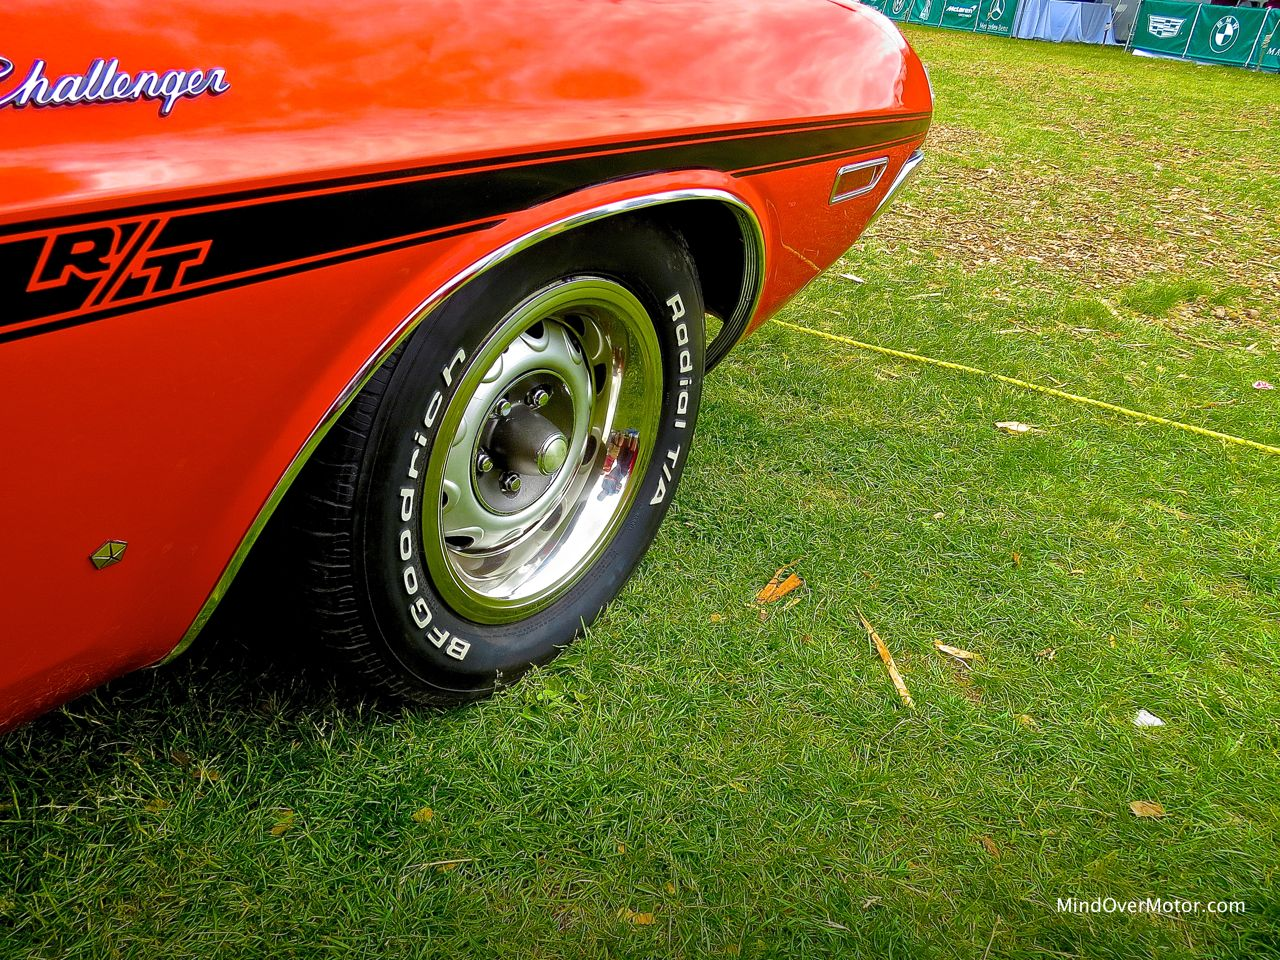 1970 Dodge Challenger R:T Convertible Wheel